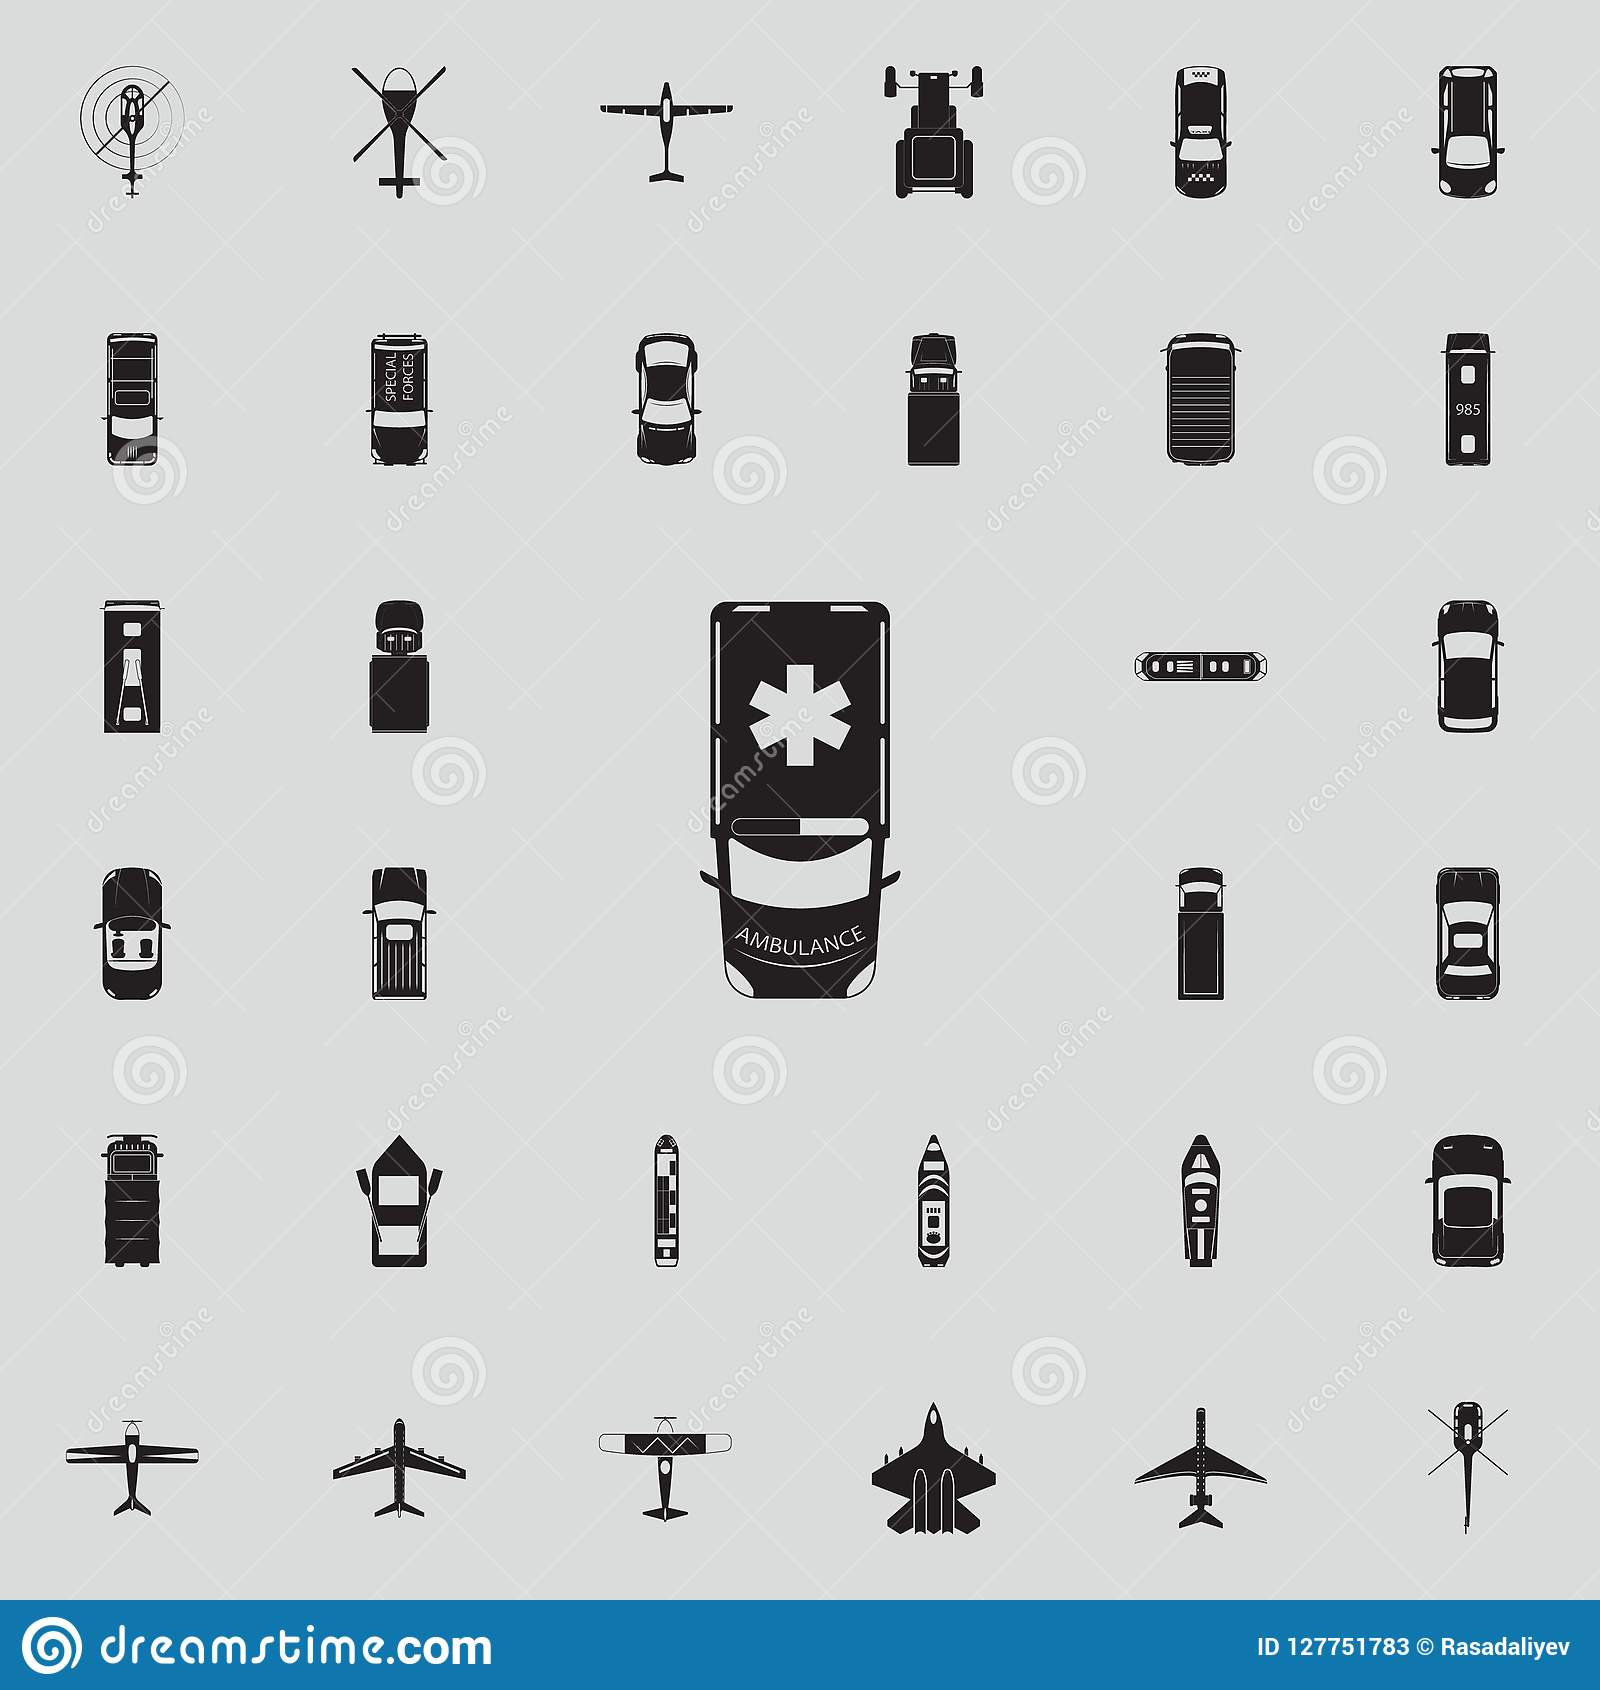 Ambulance Icon Transport View From Above Icons Universal